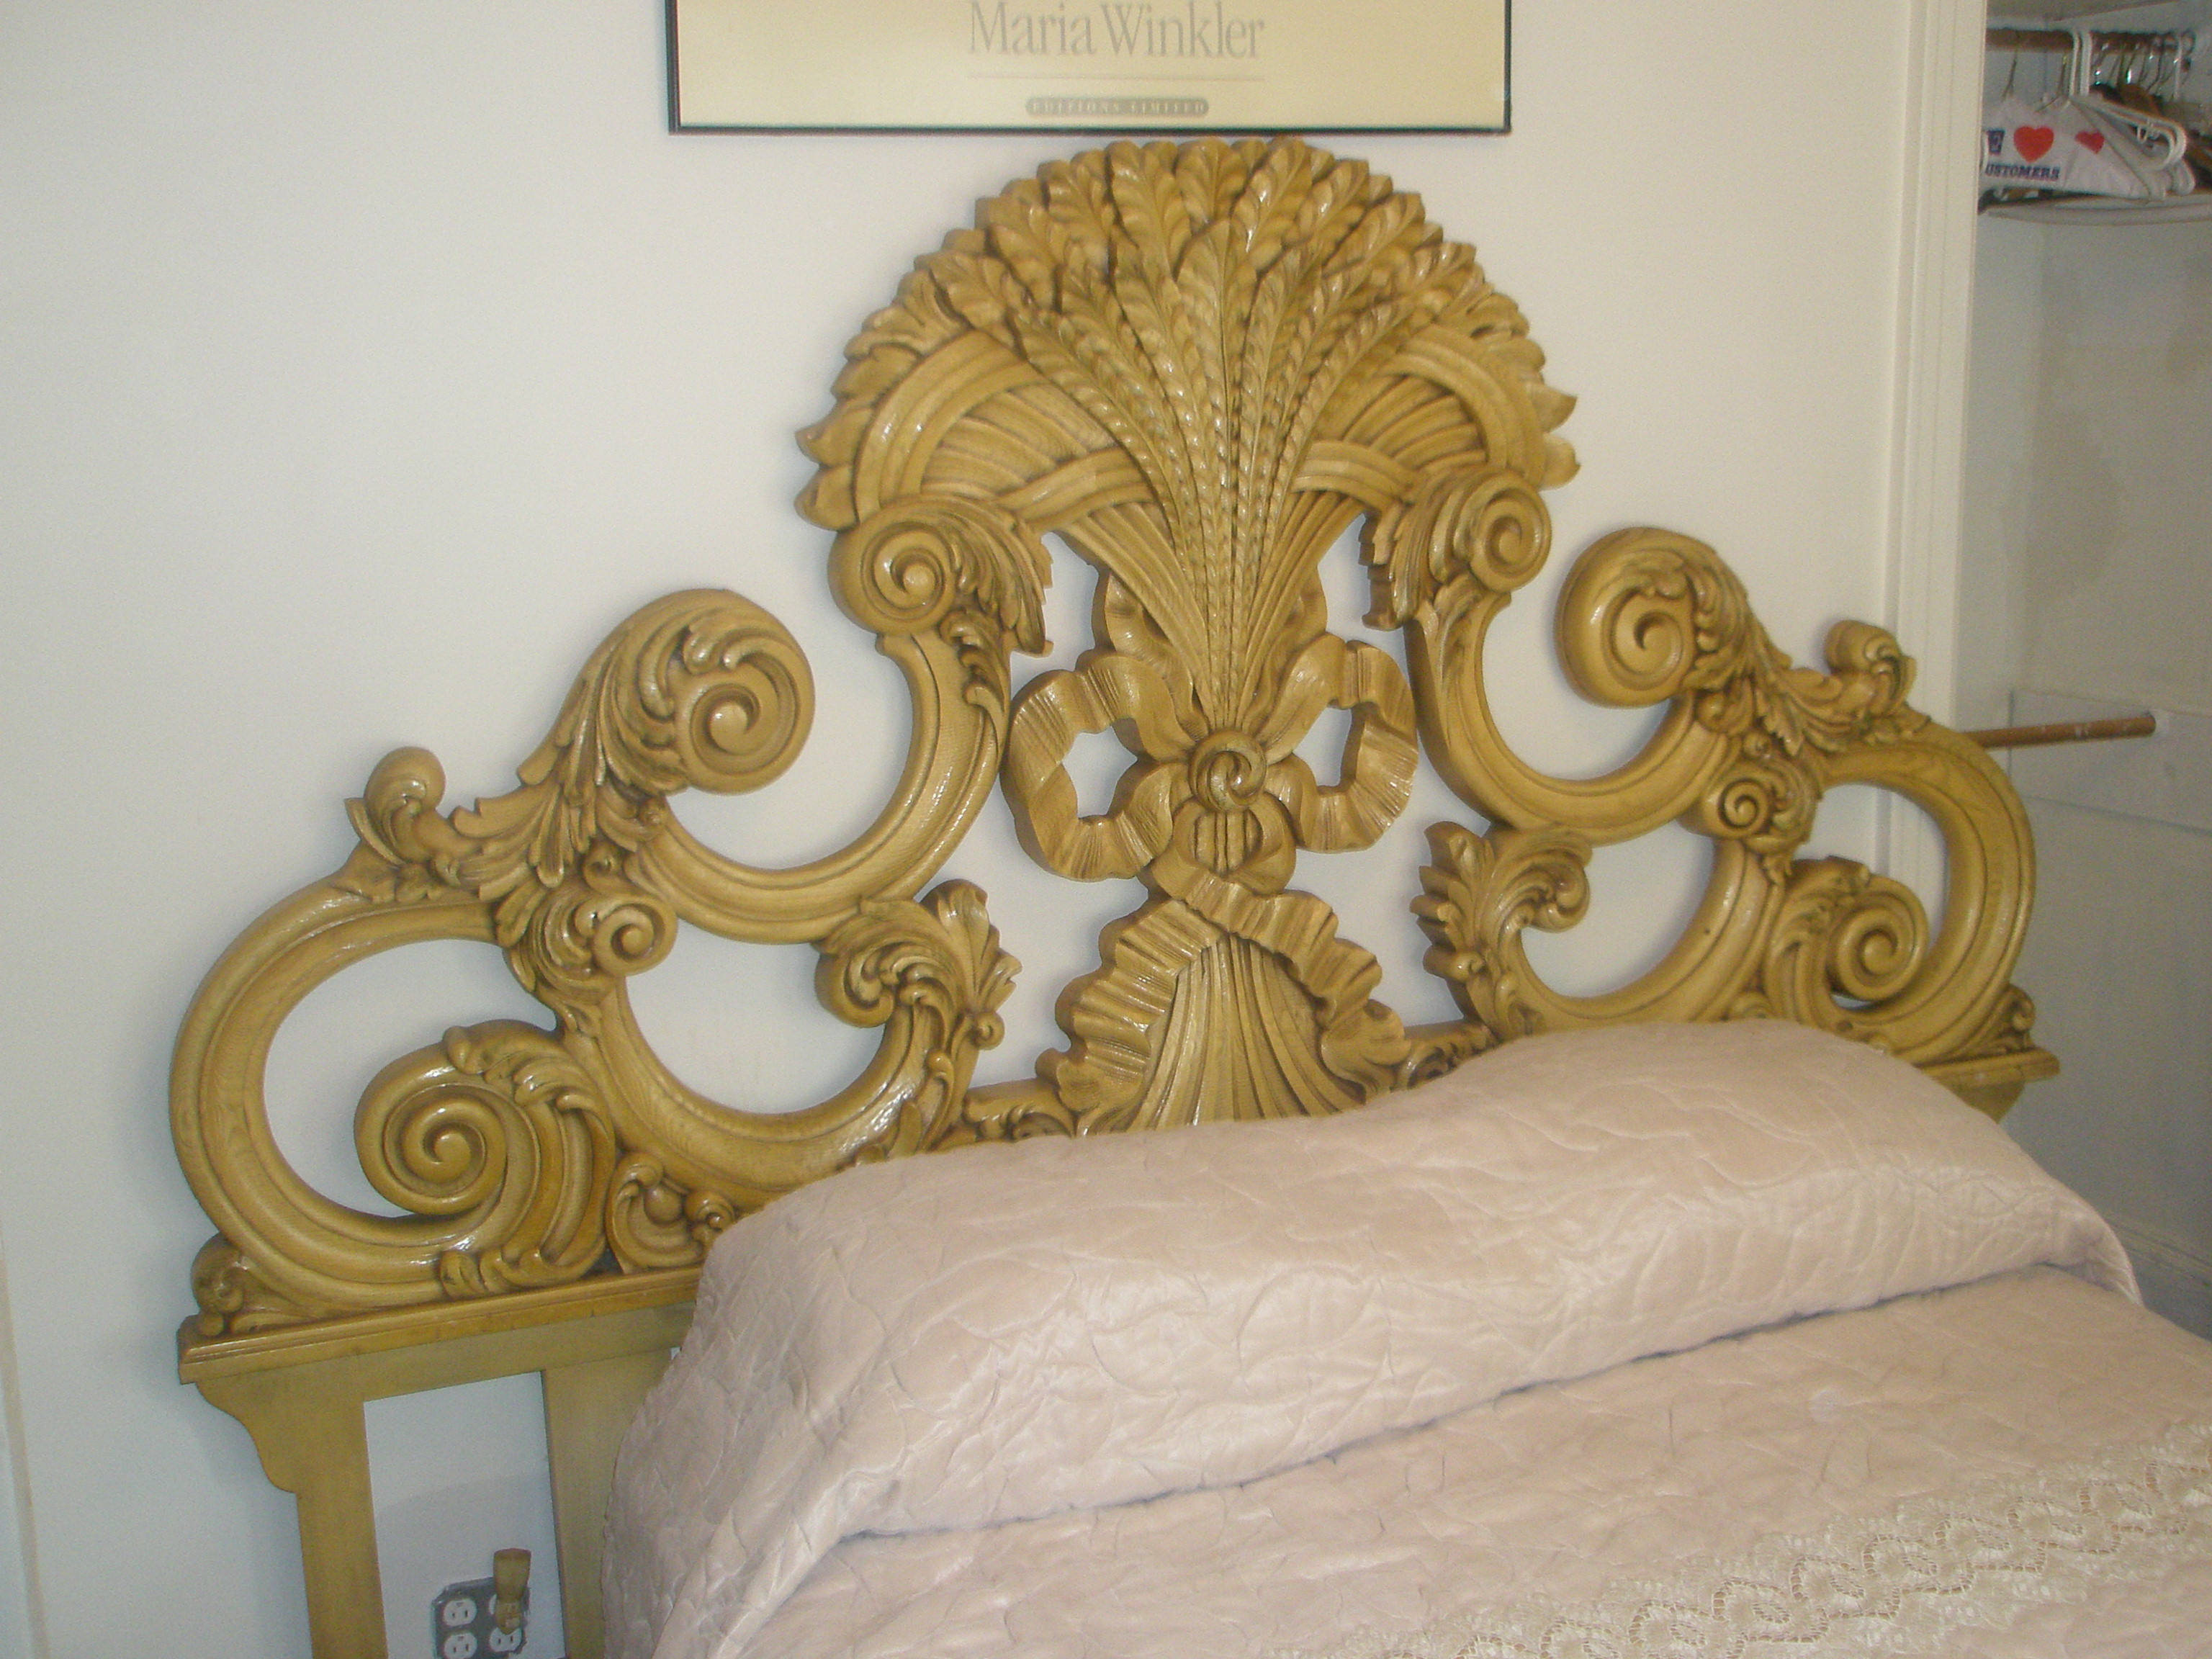 Antiques Com Classifieds Antiques Antique Furniture Antique Beds Bedroom Sets For Sale